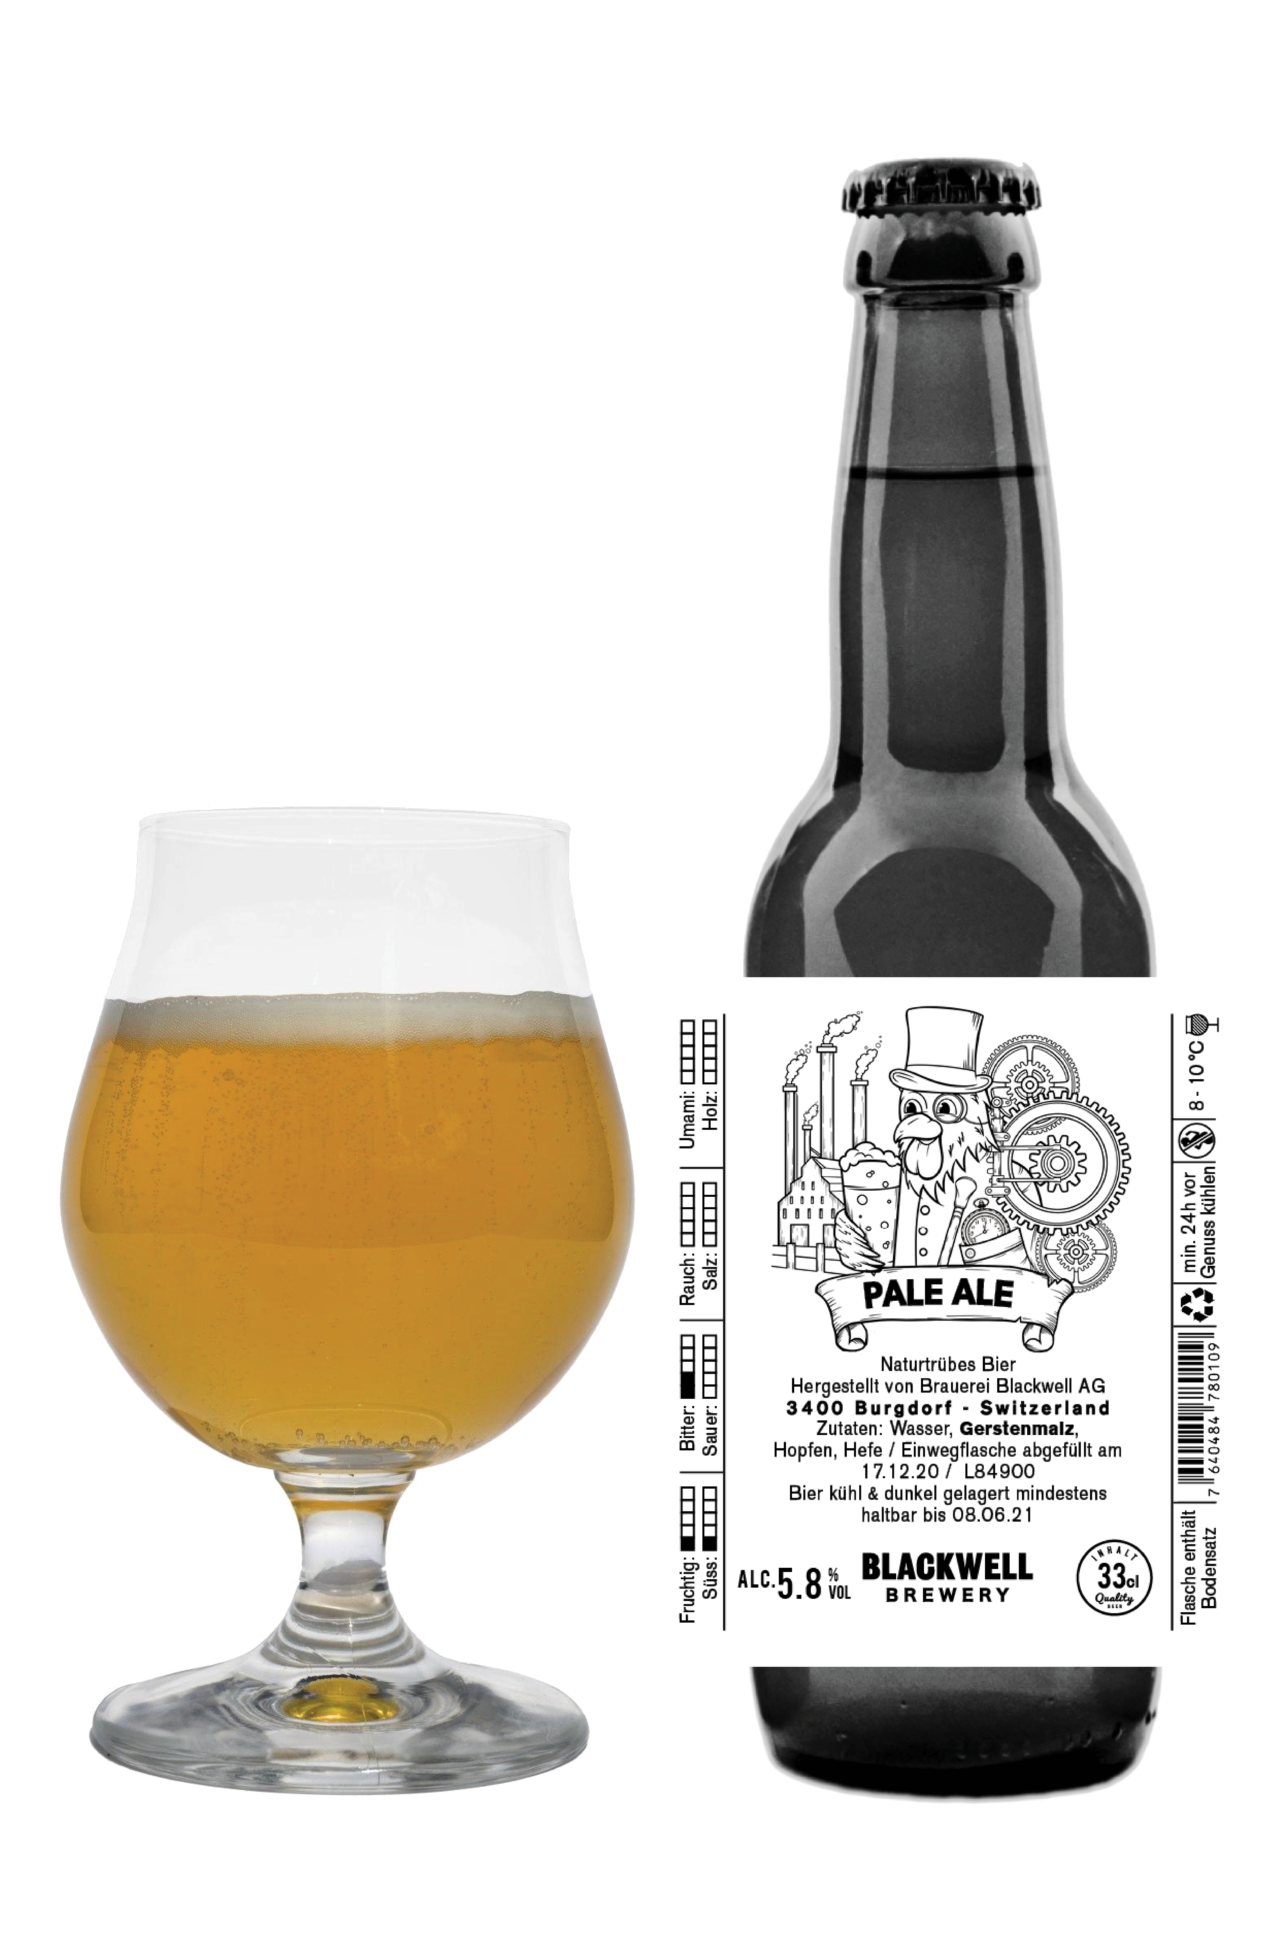 https://blackwellbrewery.ch/wp-content/uploads/2020/05/PaleAleBlackwell-1-1280x1939.png